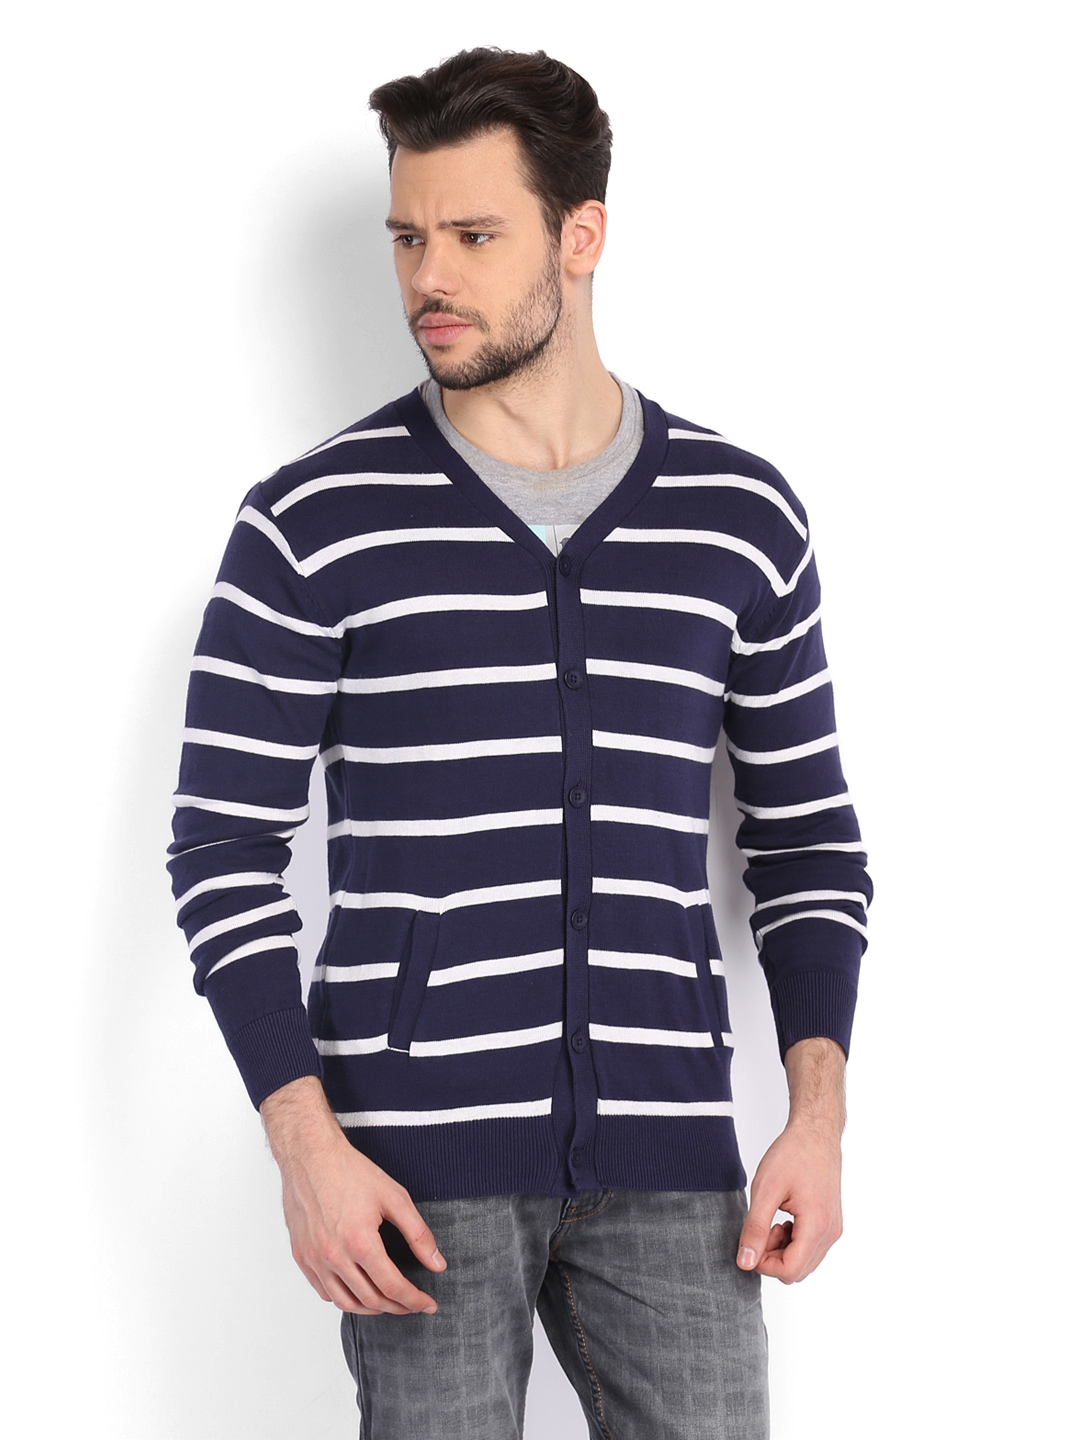 Shop blue white striped sweater at Neiman Marcus, where you will find free shipping on the latest in fashion from top designers. Available in Bright White, Navy. Figue Fringed-Sleeve Intarsia-Stripe Alpaca Cardigan with Embroidery Details Figue intarsia-striped cardigan with embroidery. Open front. 3/4 fringe sleeves. Regular fit.